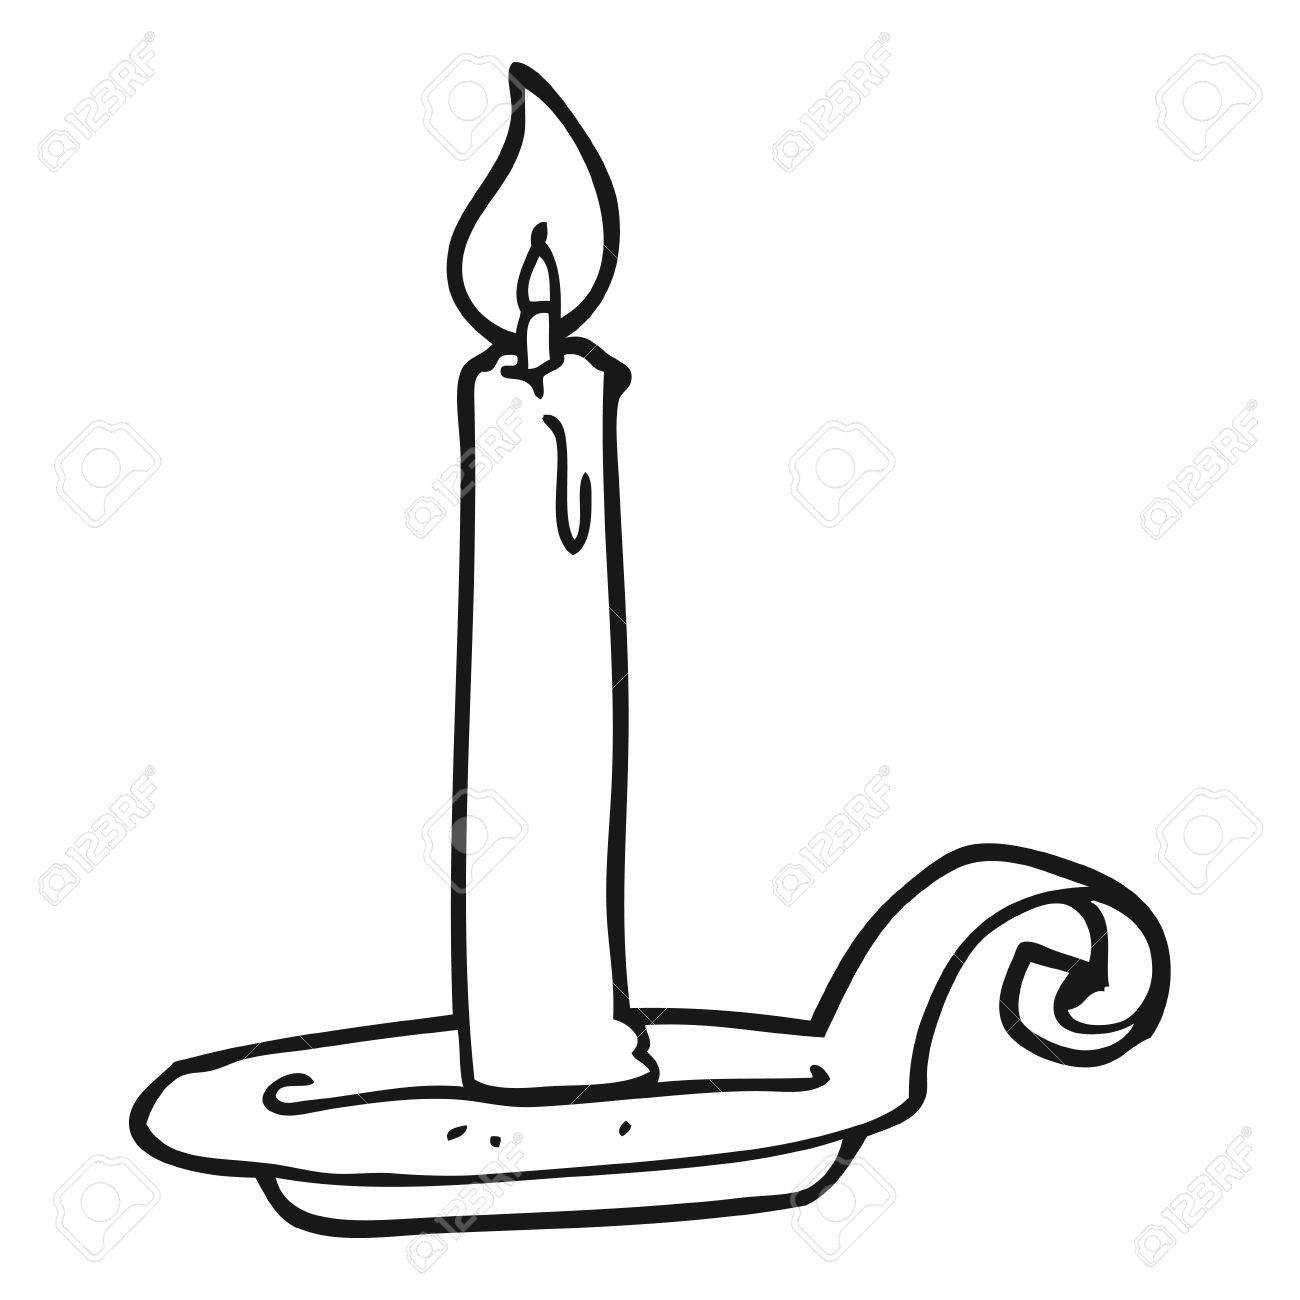 Freehand Drawn Black And White Cartoon Candle Burning Royalty Free ... for Candle Clip Art Black And White  585ifm